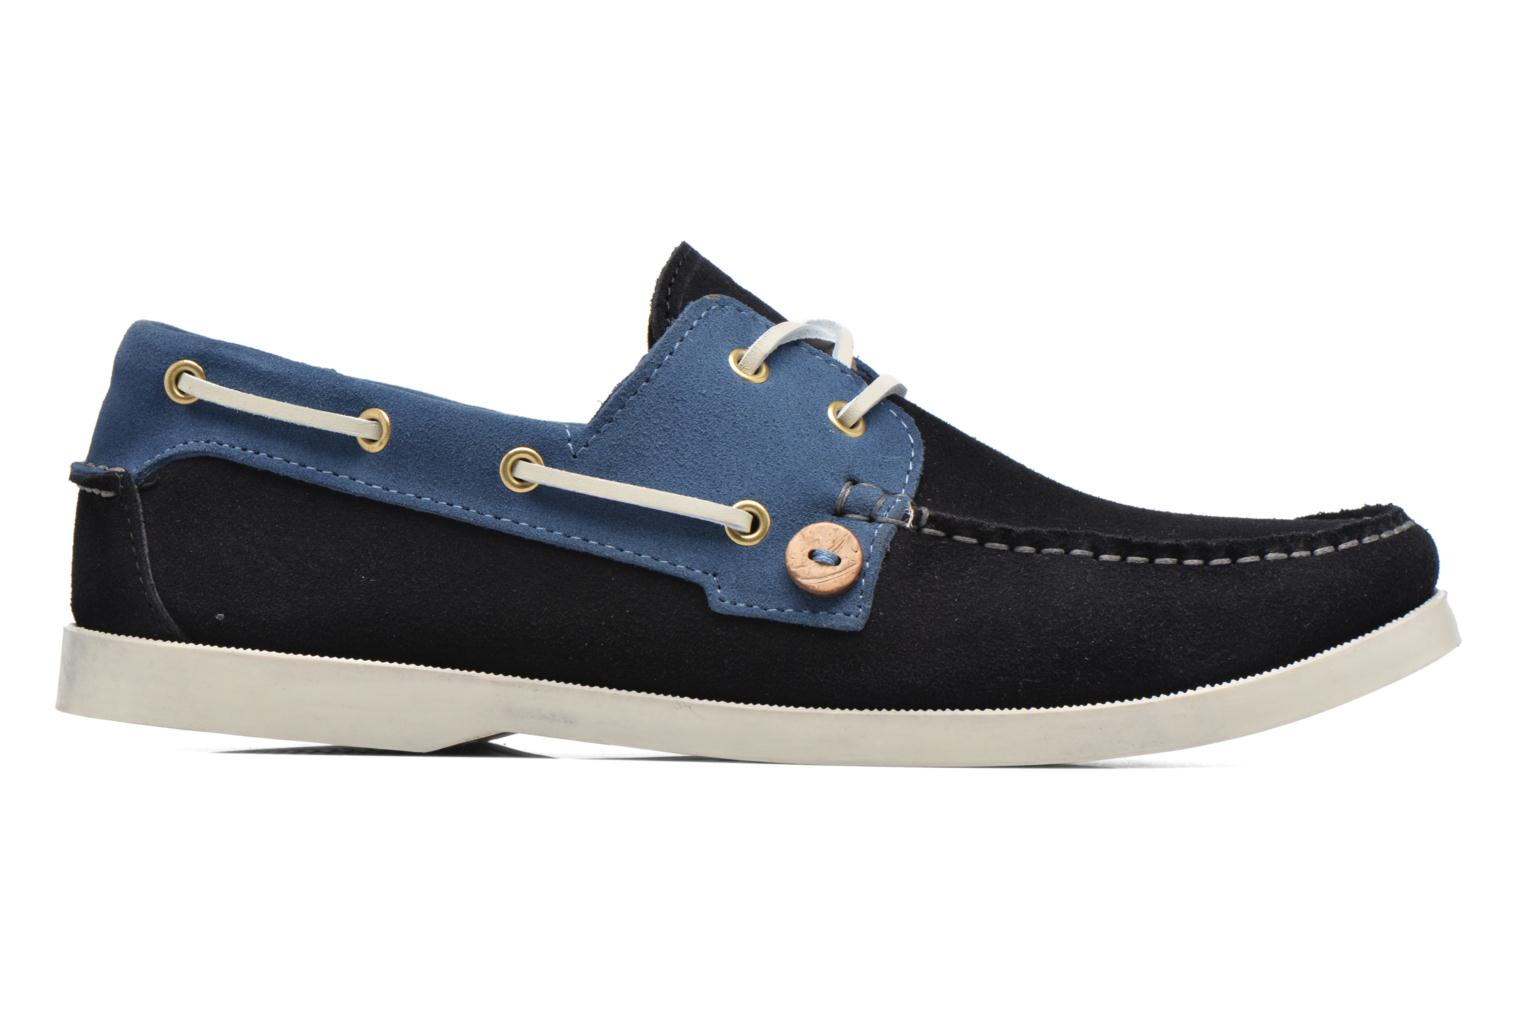 Larch NAVY/OCEAN